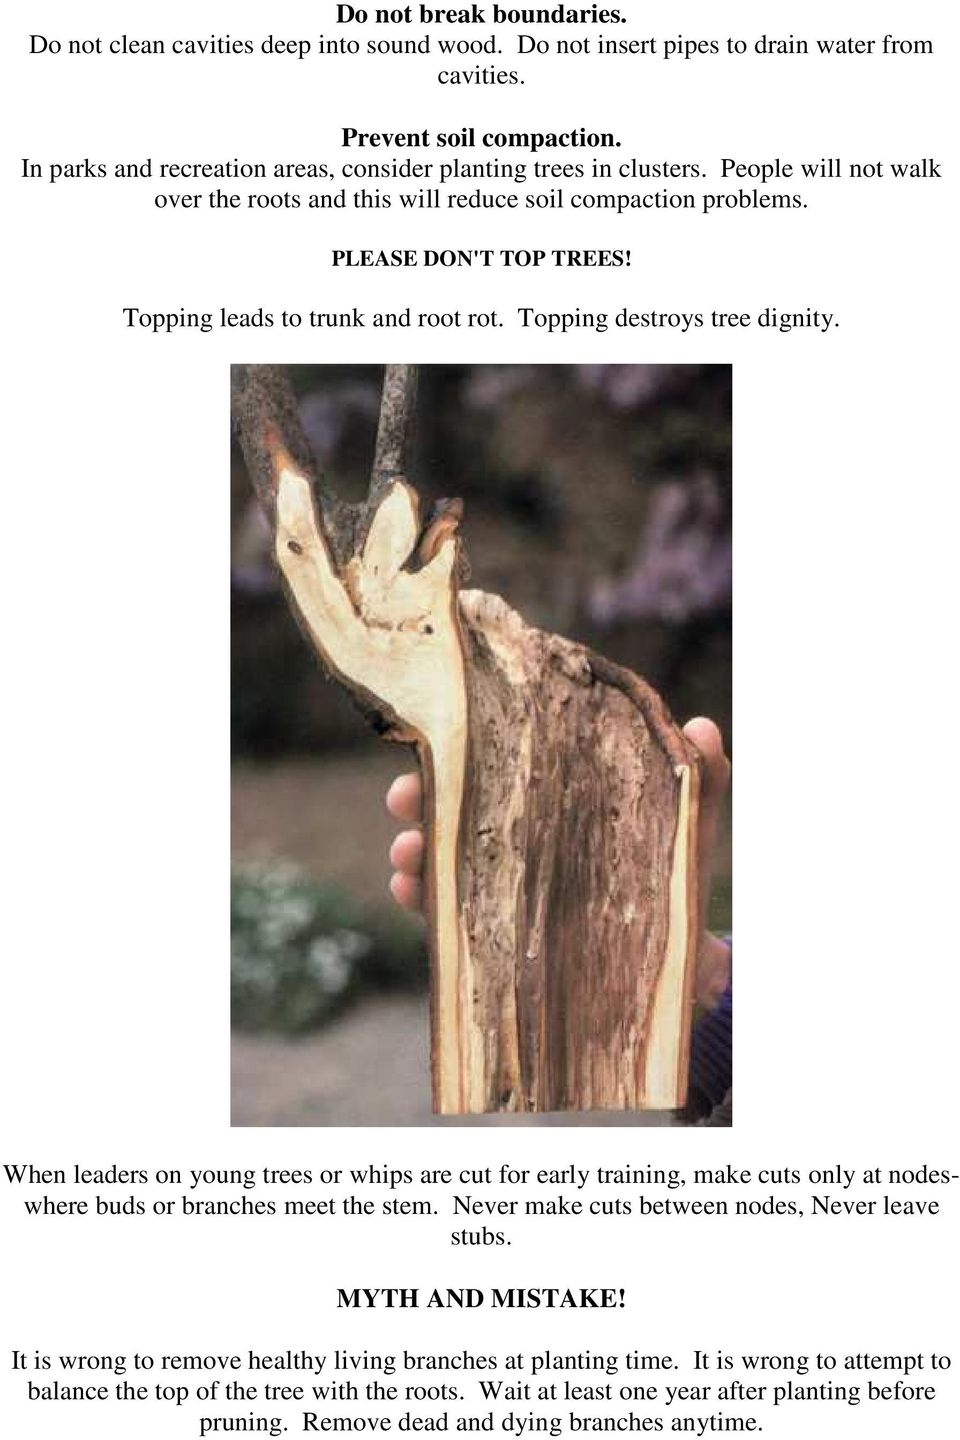 Topping leads to trunk and root rot. Topping destroys tree dignity. When leaders on young trees or whips are cut for early training, make cuts only at nodeswhere buds or branches meet the stem.